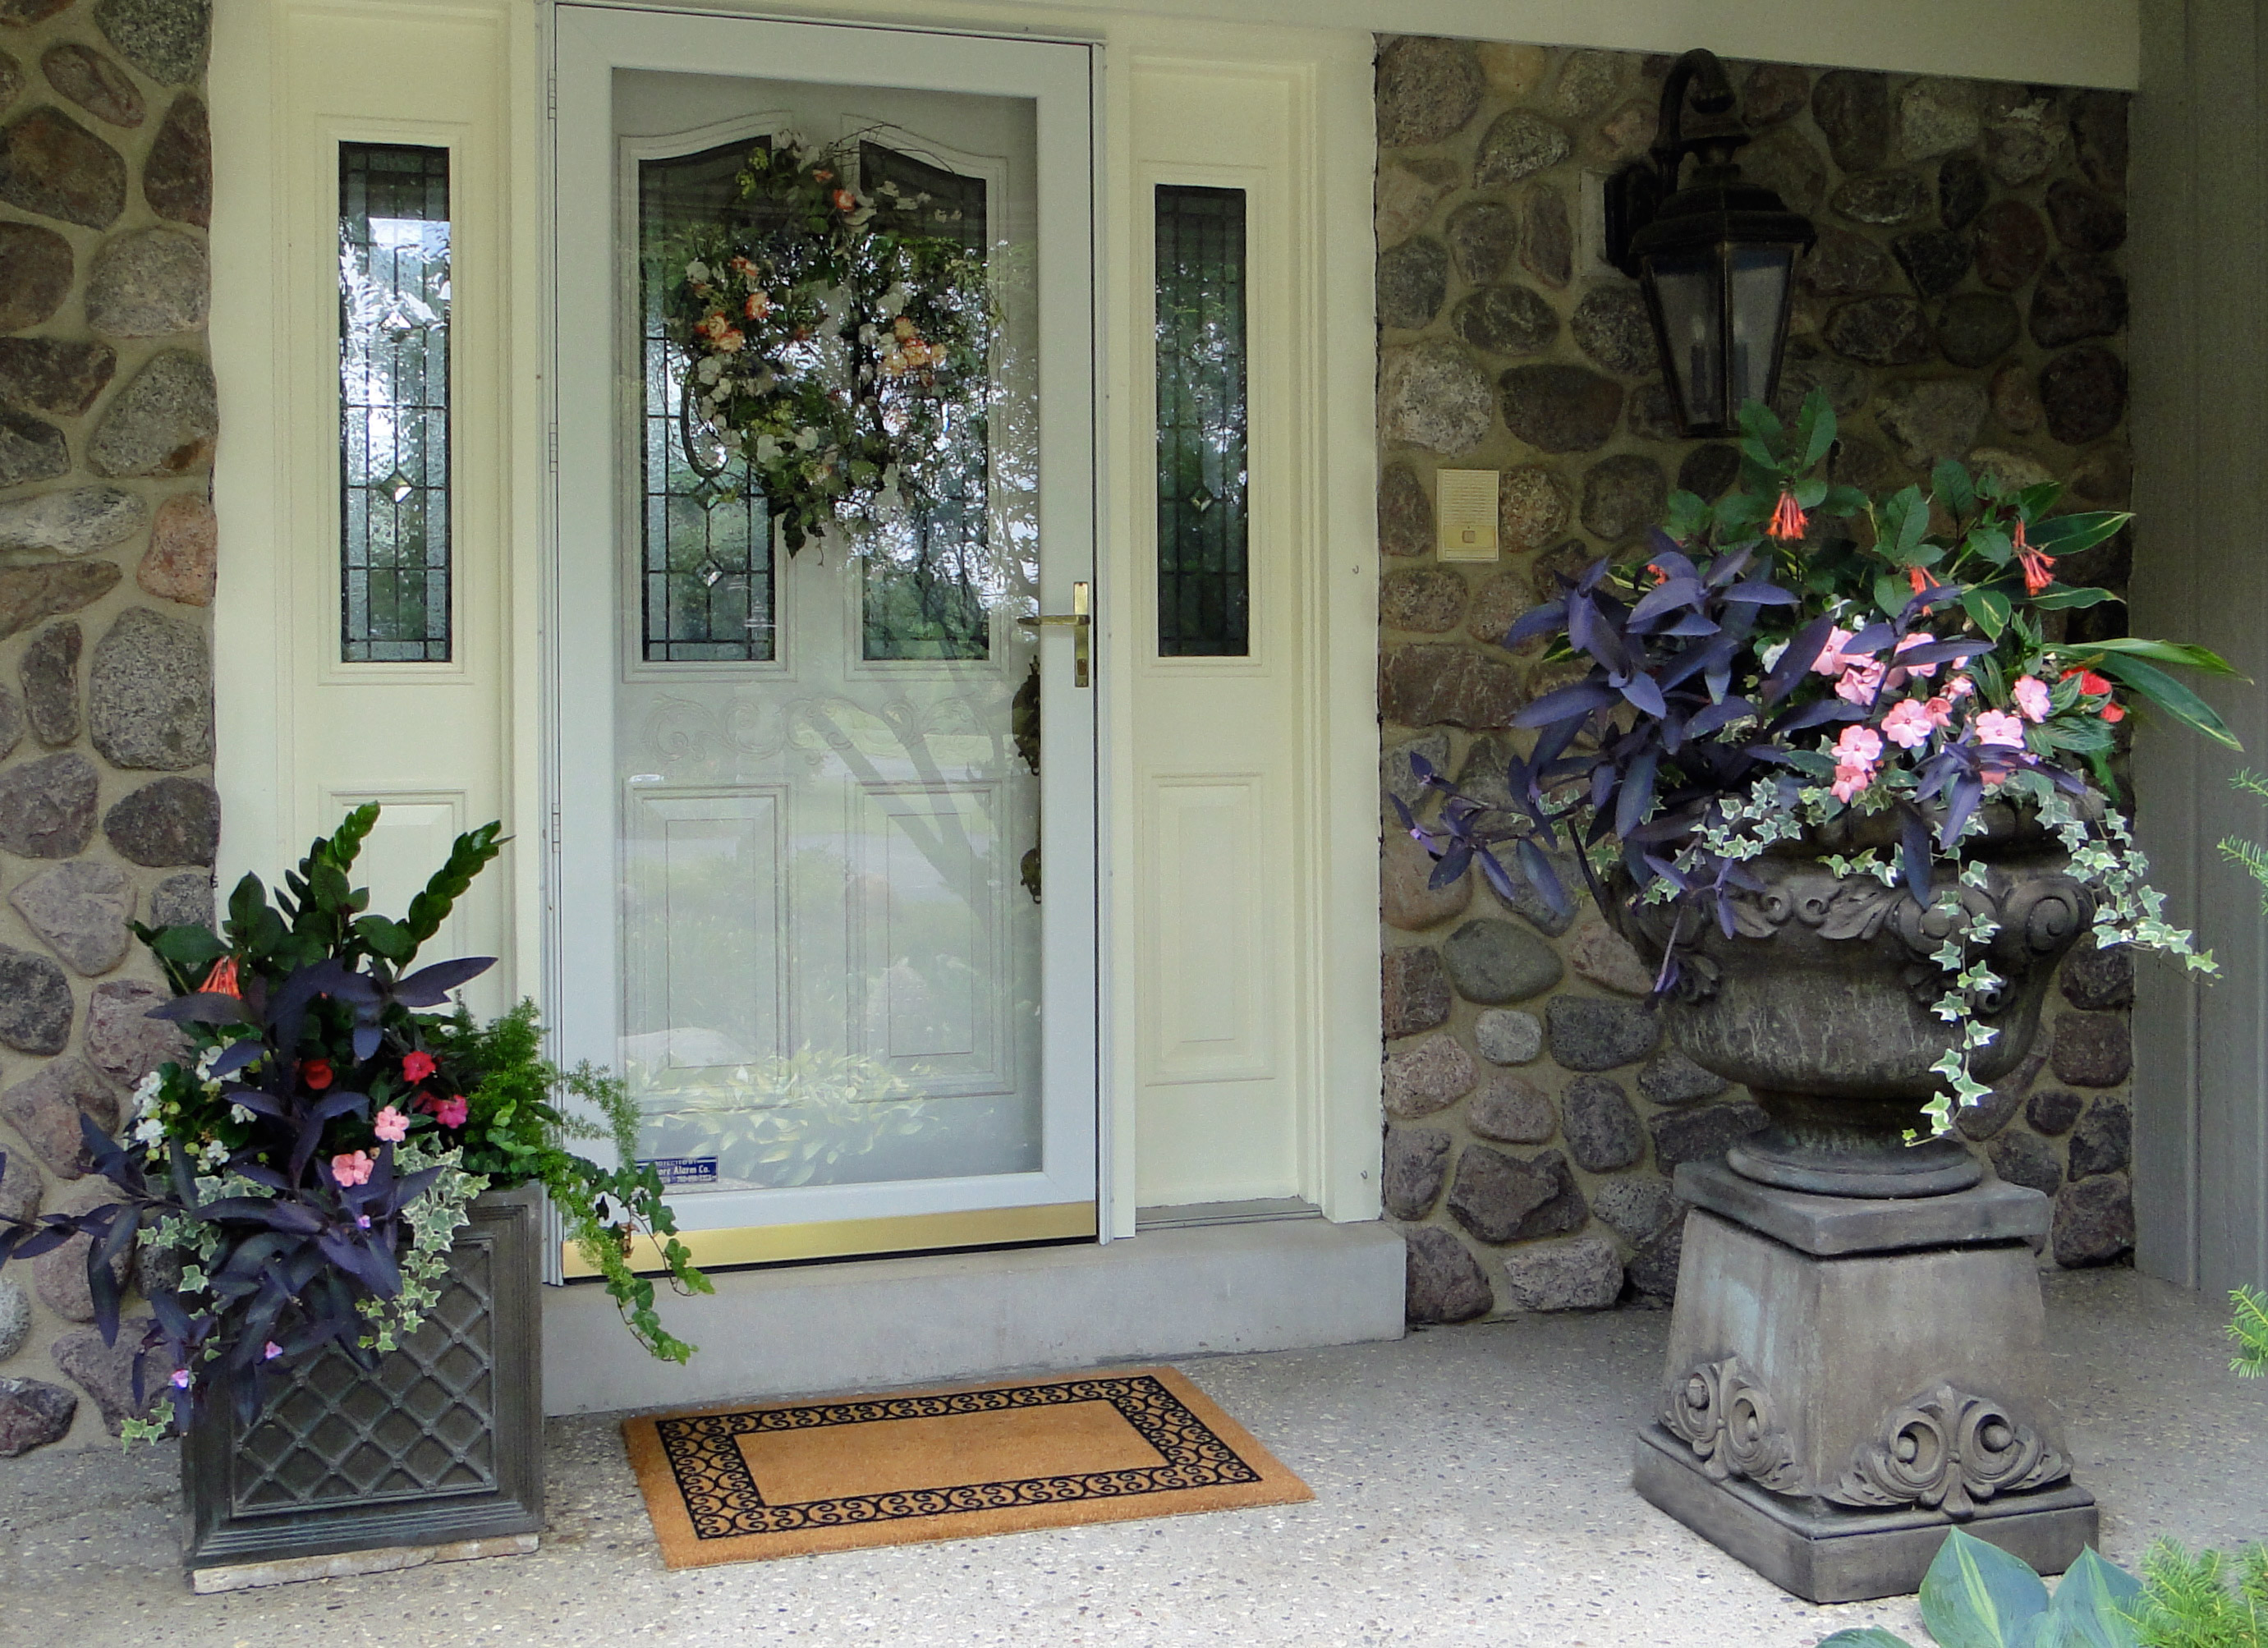 Container garden groupings can enhance the entryway of a home